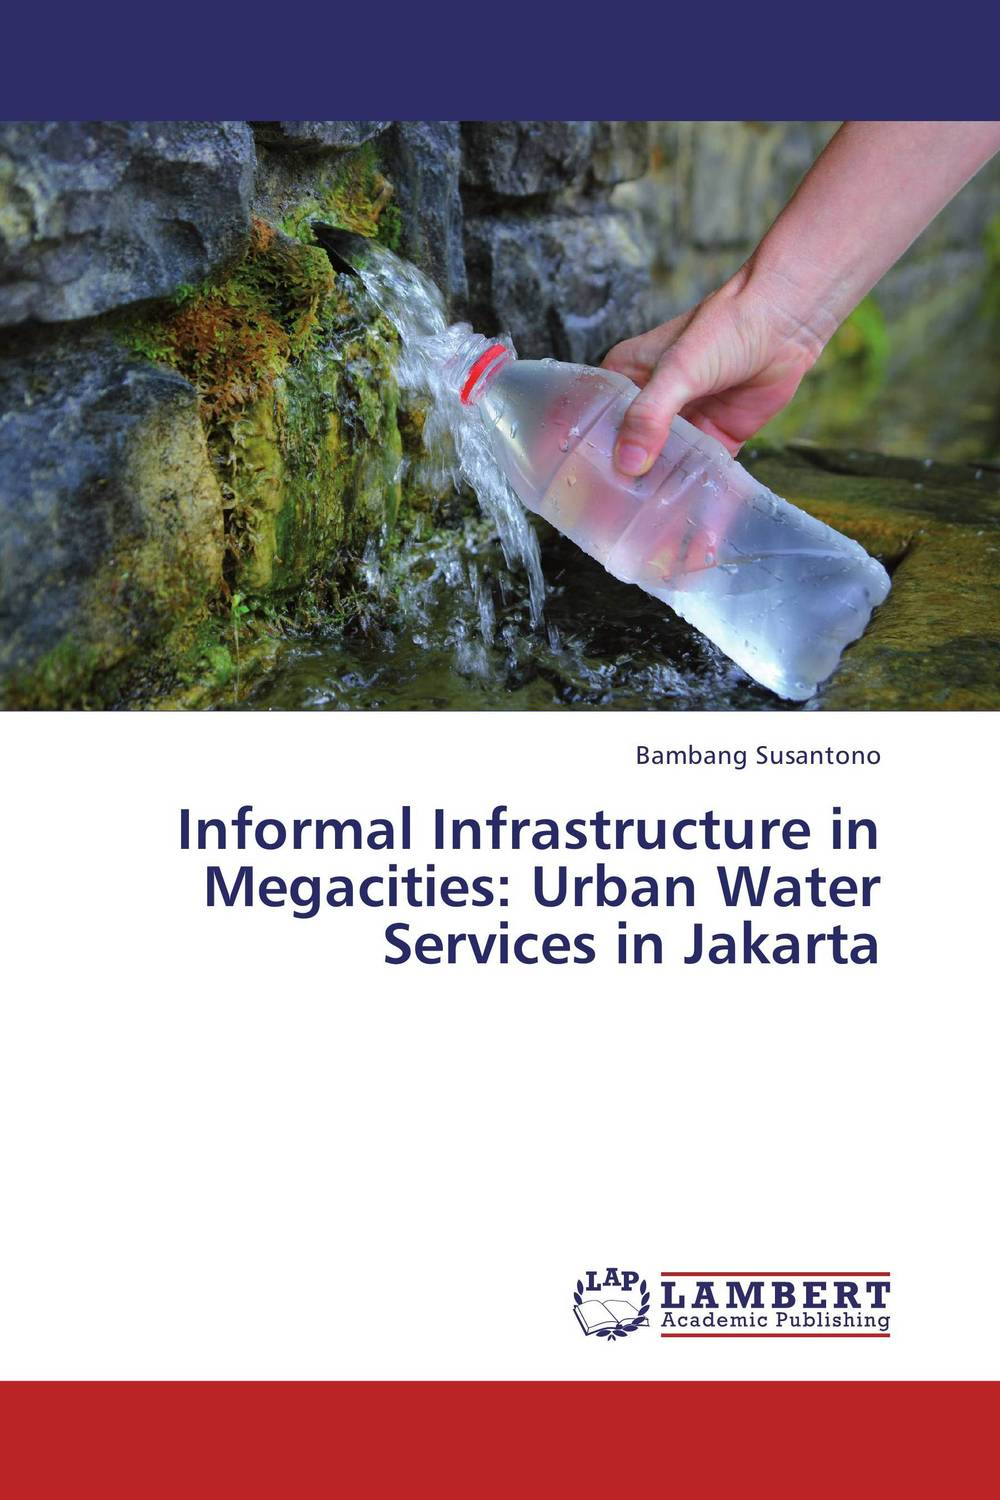 Informal Infrastructure in Megacities: Urban Water Services in Jakarta forest ecosystem services and urban water supply